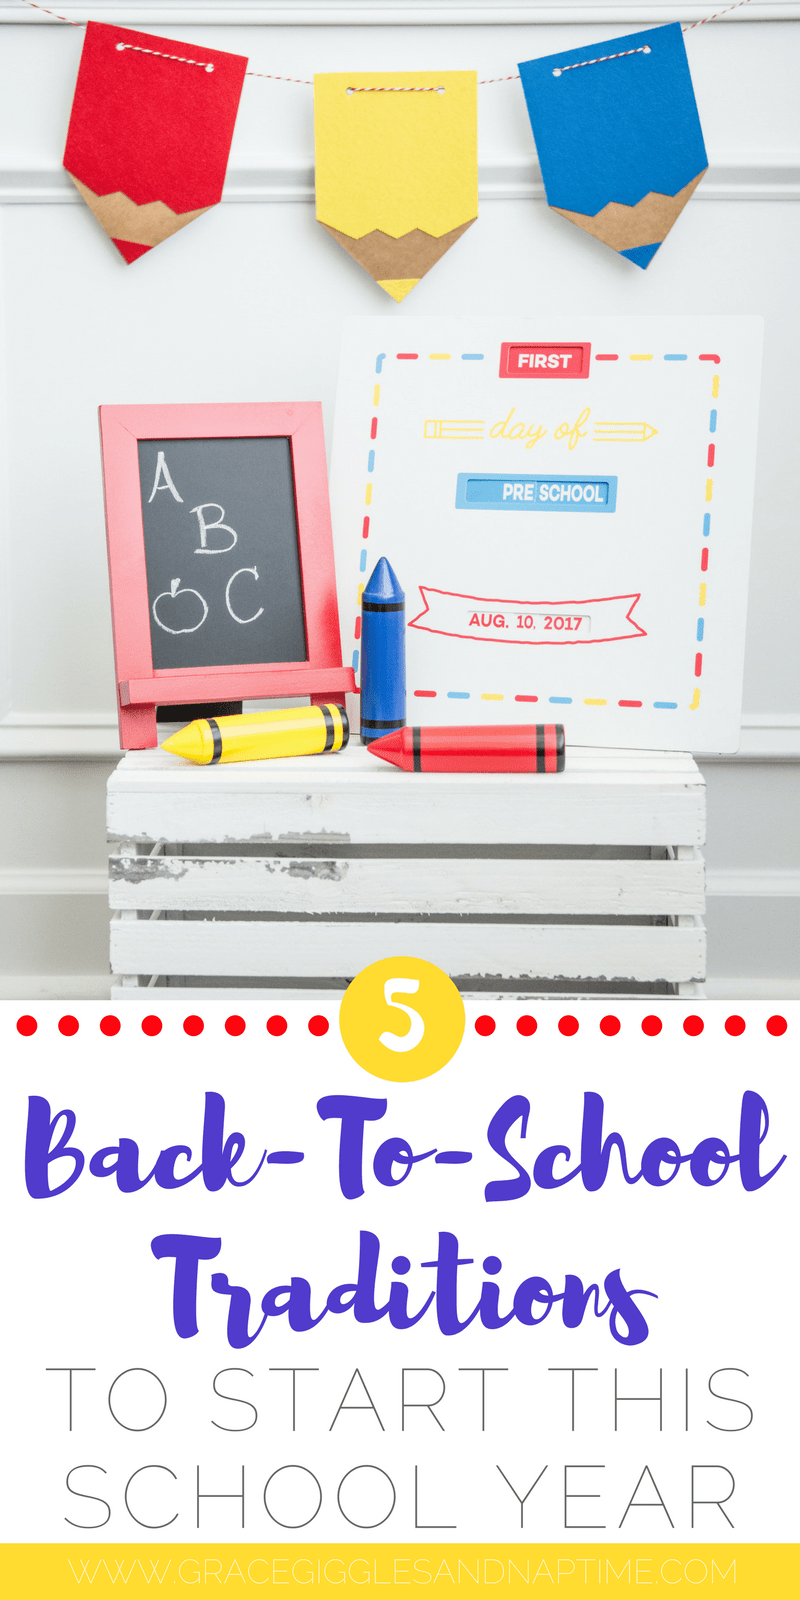 5 Back-To-School Traditions to Start this School Year